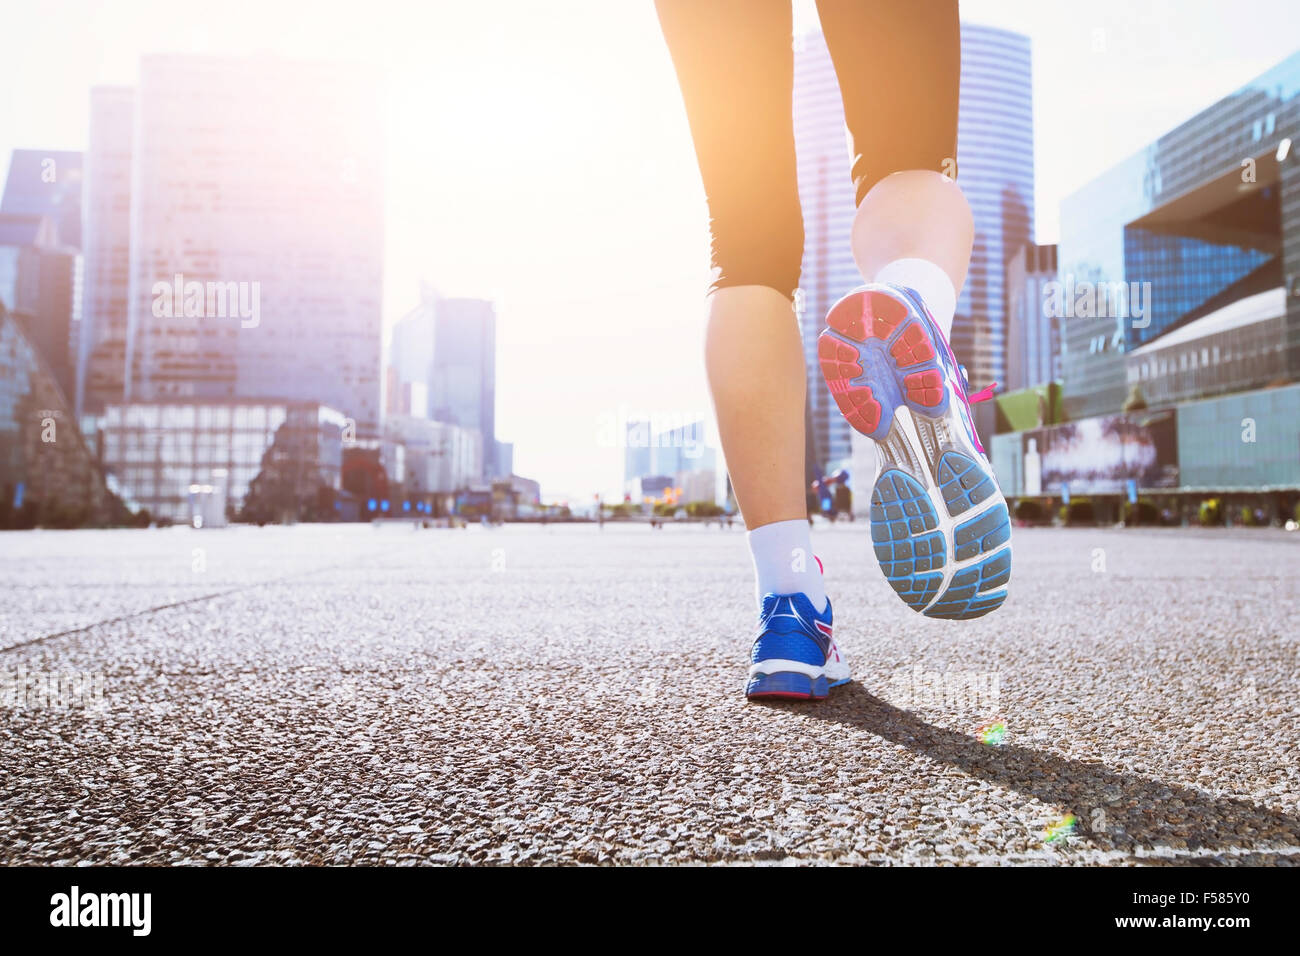 running in the city - Stock Image